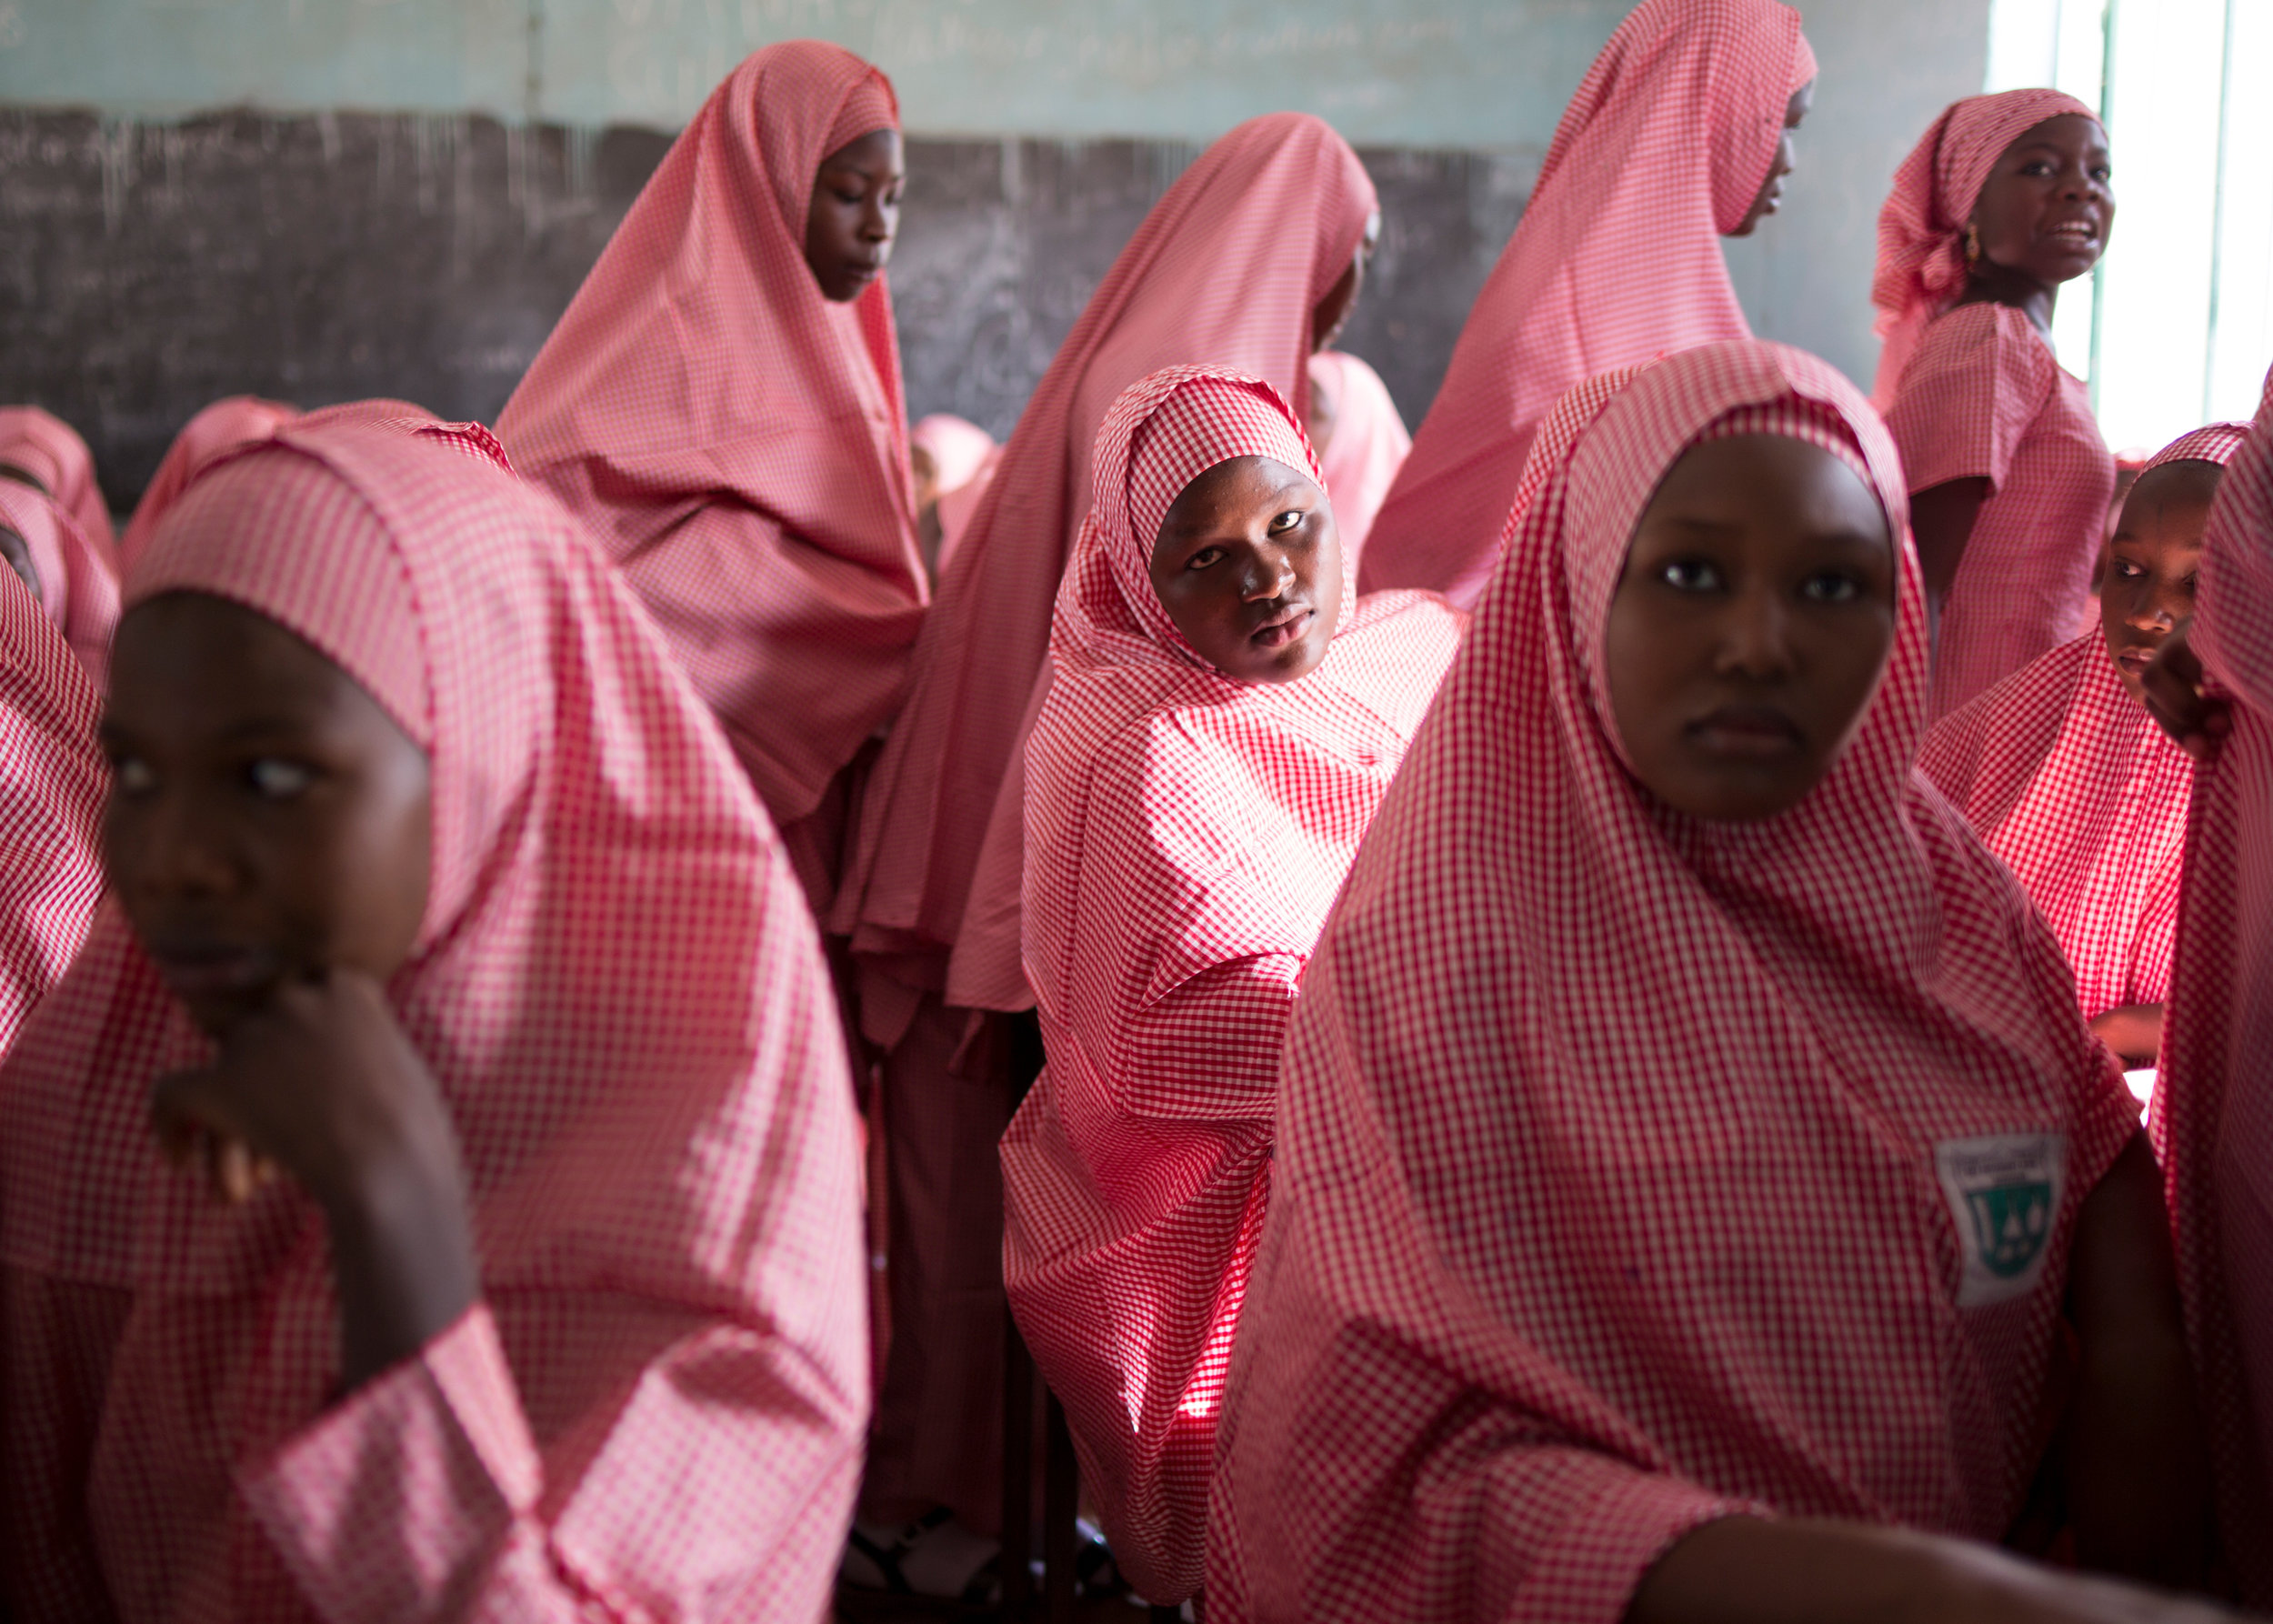 """Students wait for class to begin at Shehu Sanda Kyarimi government school"". Education is Forbidden series. Maiduguri, Nigeria, 13"" x 18"", 2016."